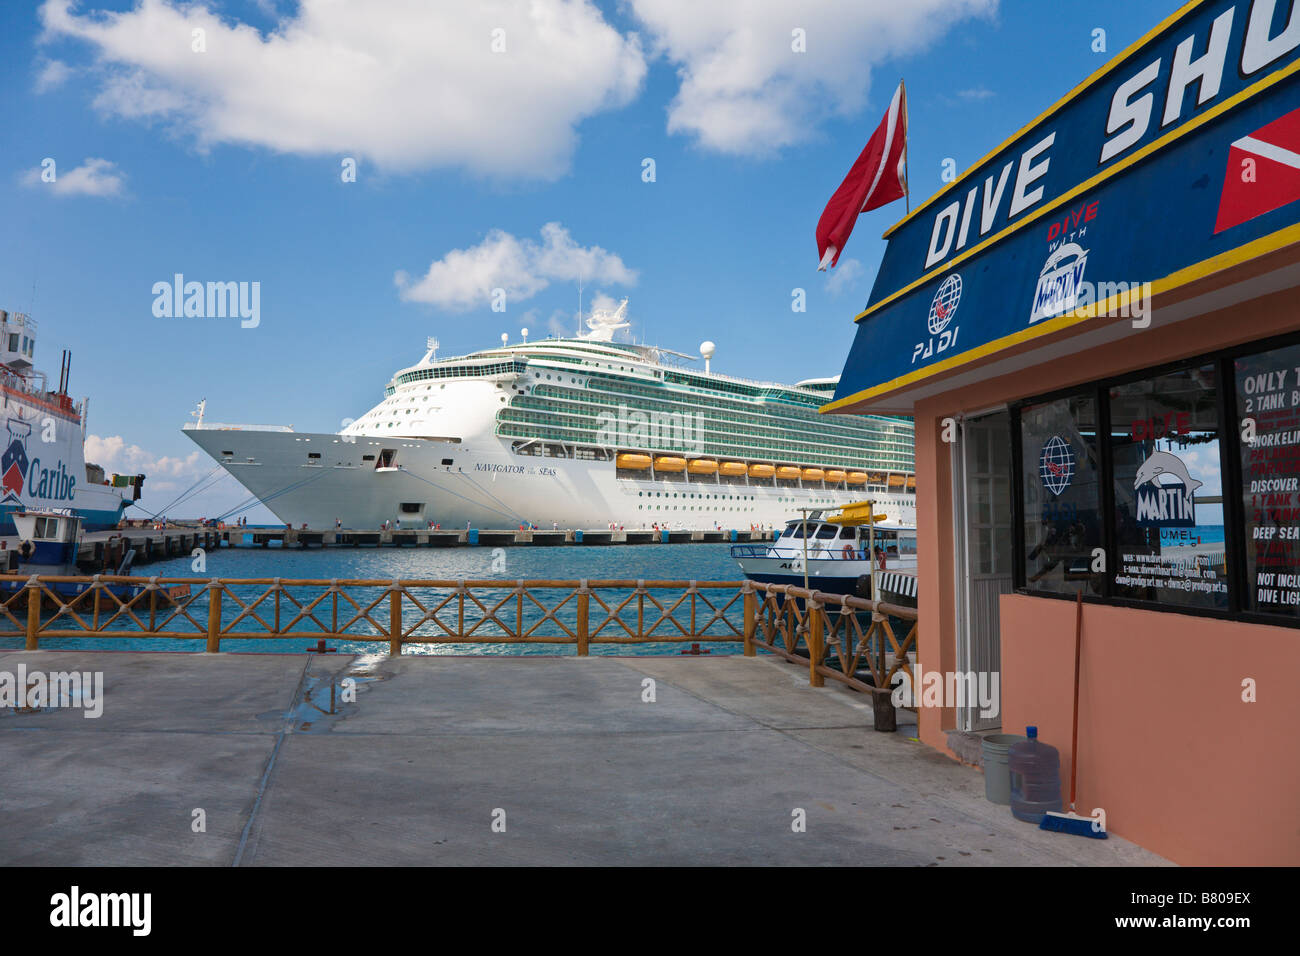 Royal Caribbean Navigator of the Seas cruise ship docked at the port of Cozumel, Mexico accross from dive shop - Stock Image